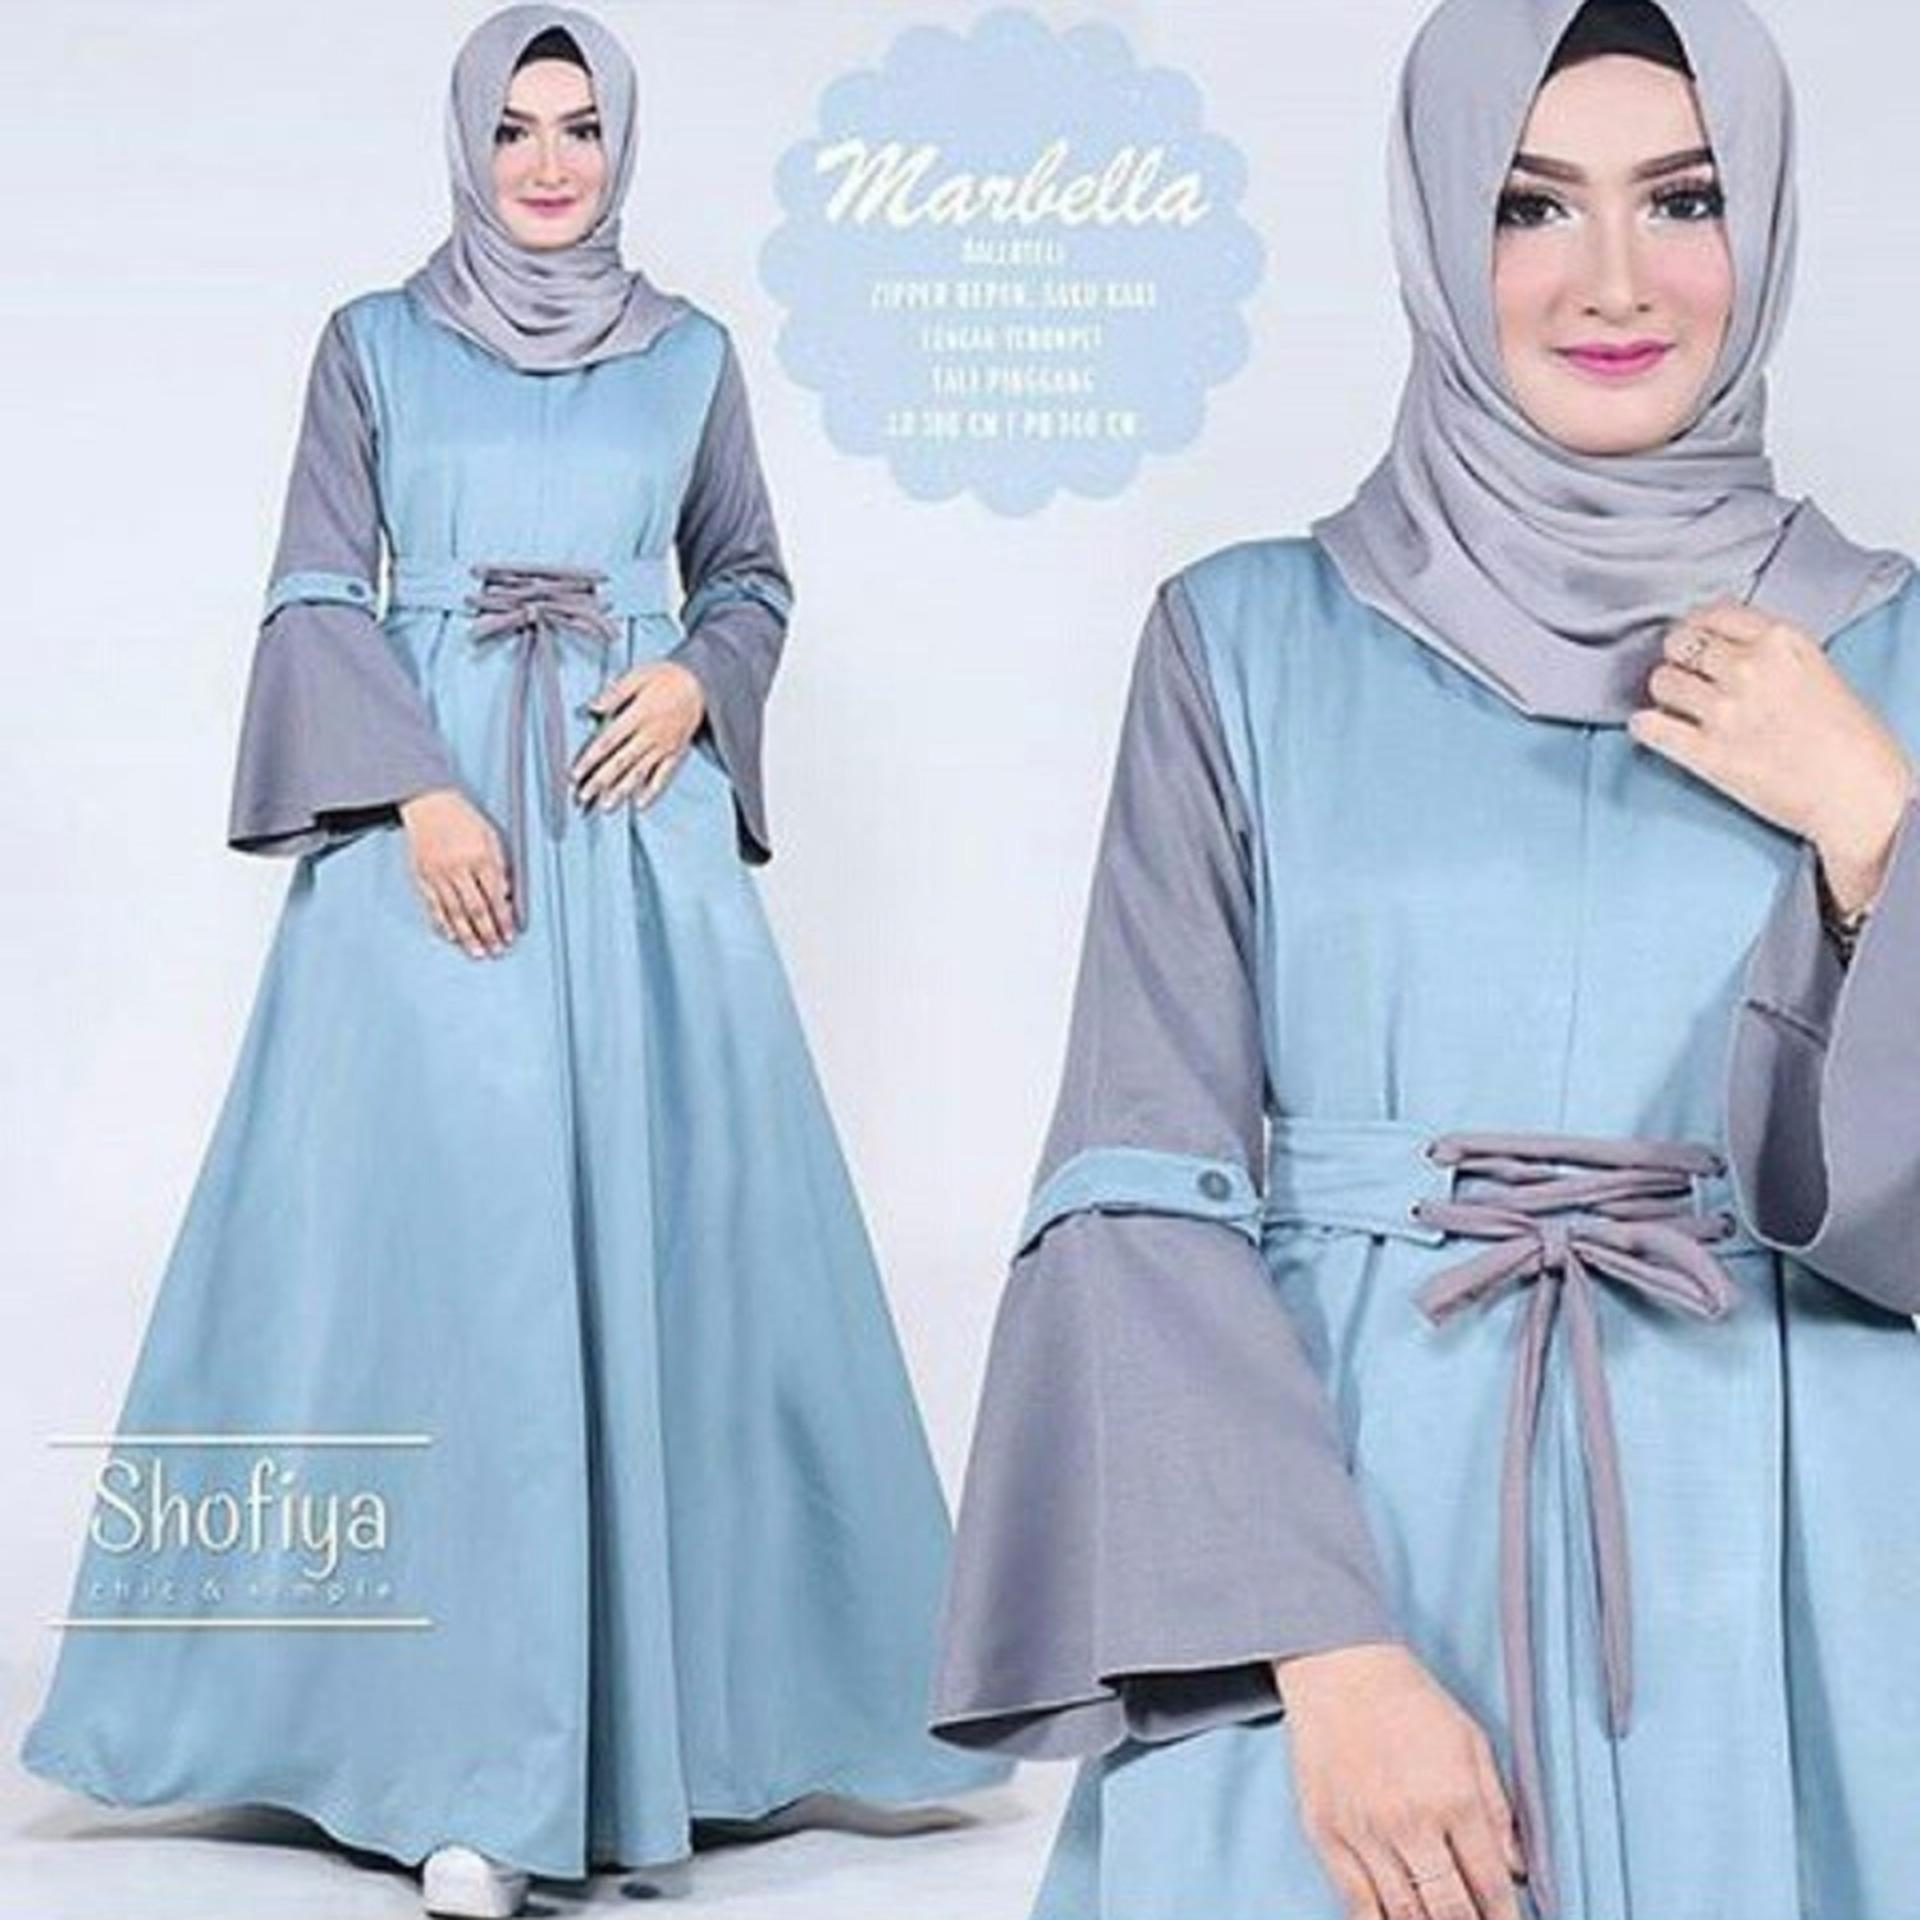 Harga Marbella Dress Fullset Murah